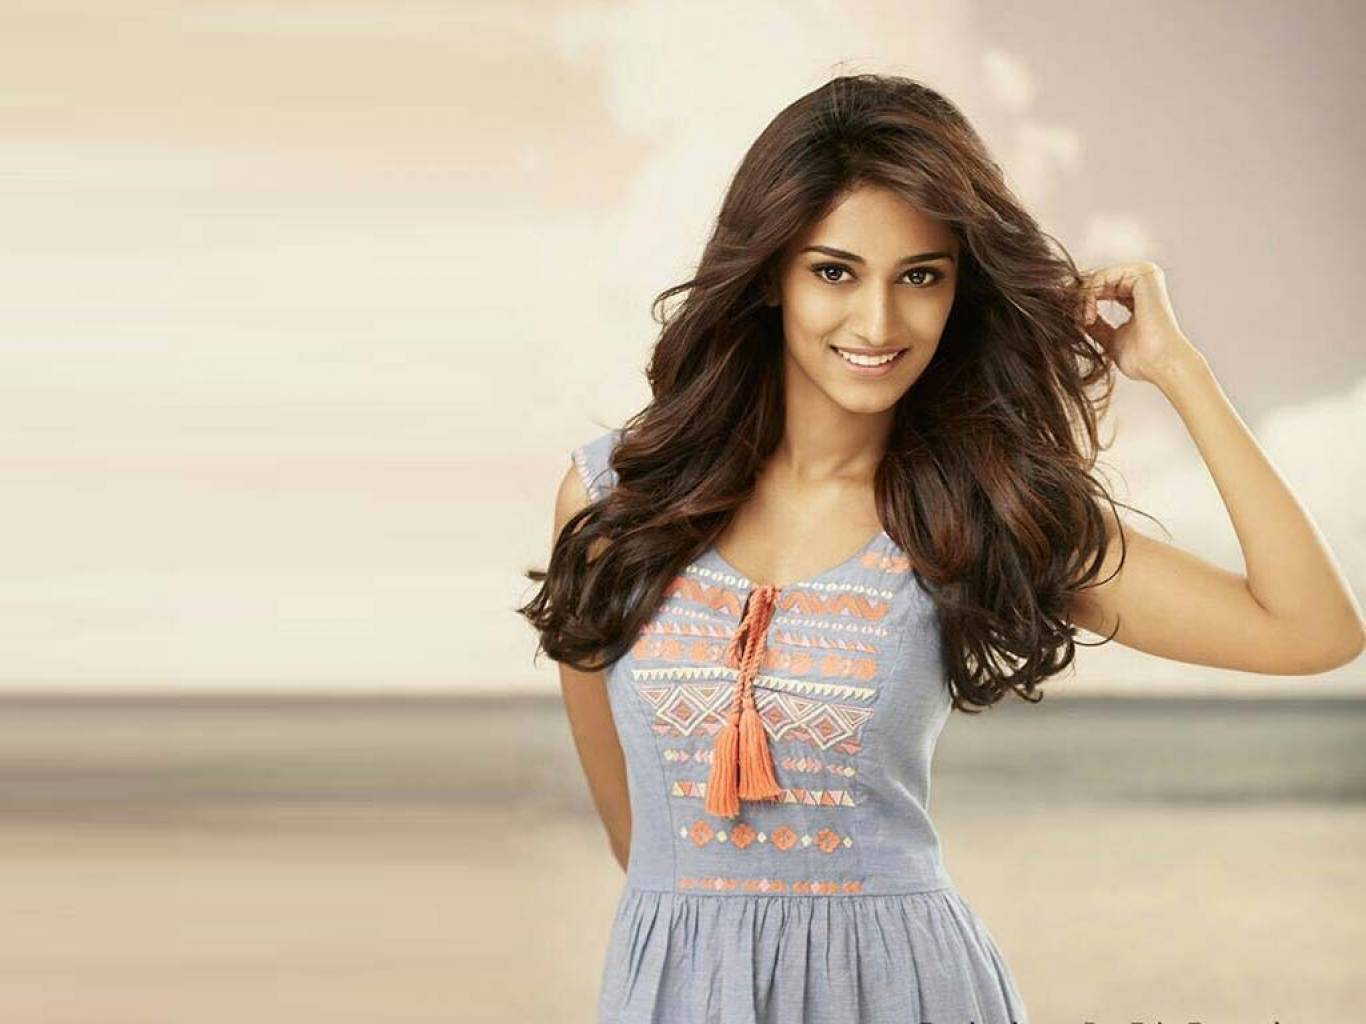 erica_fernandes_wallpapers